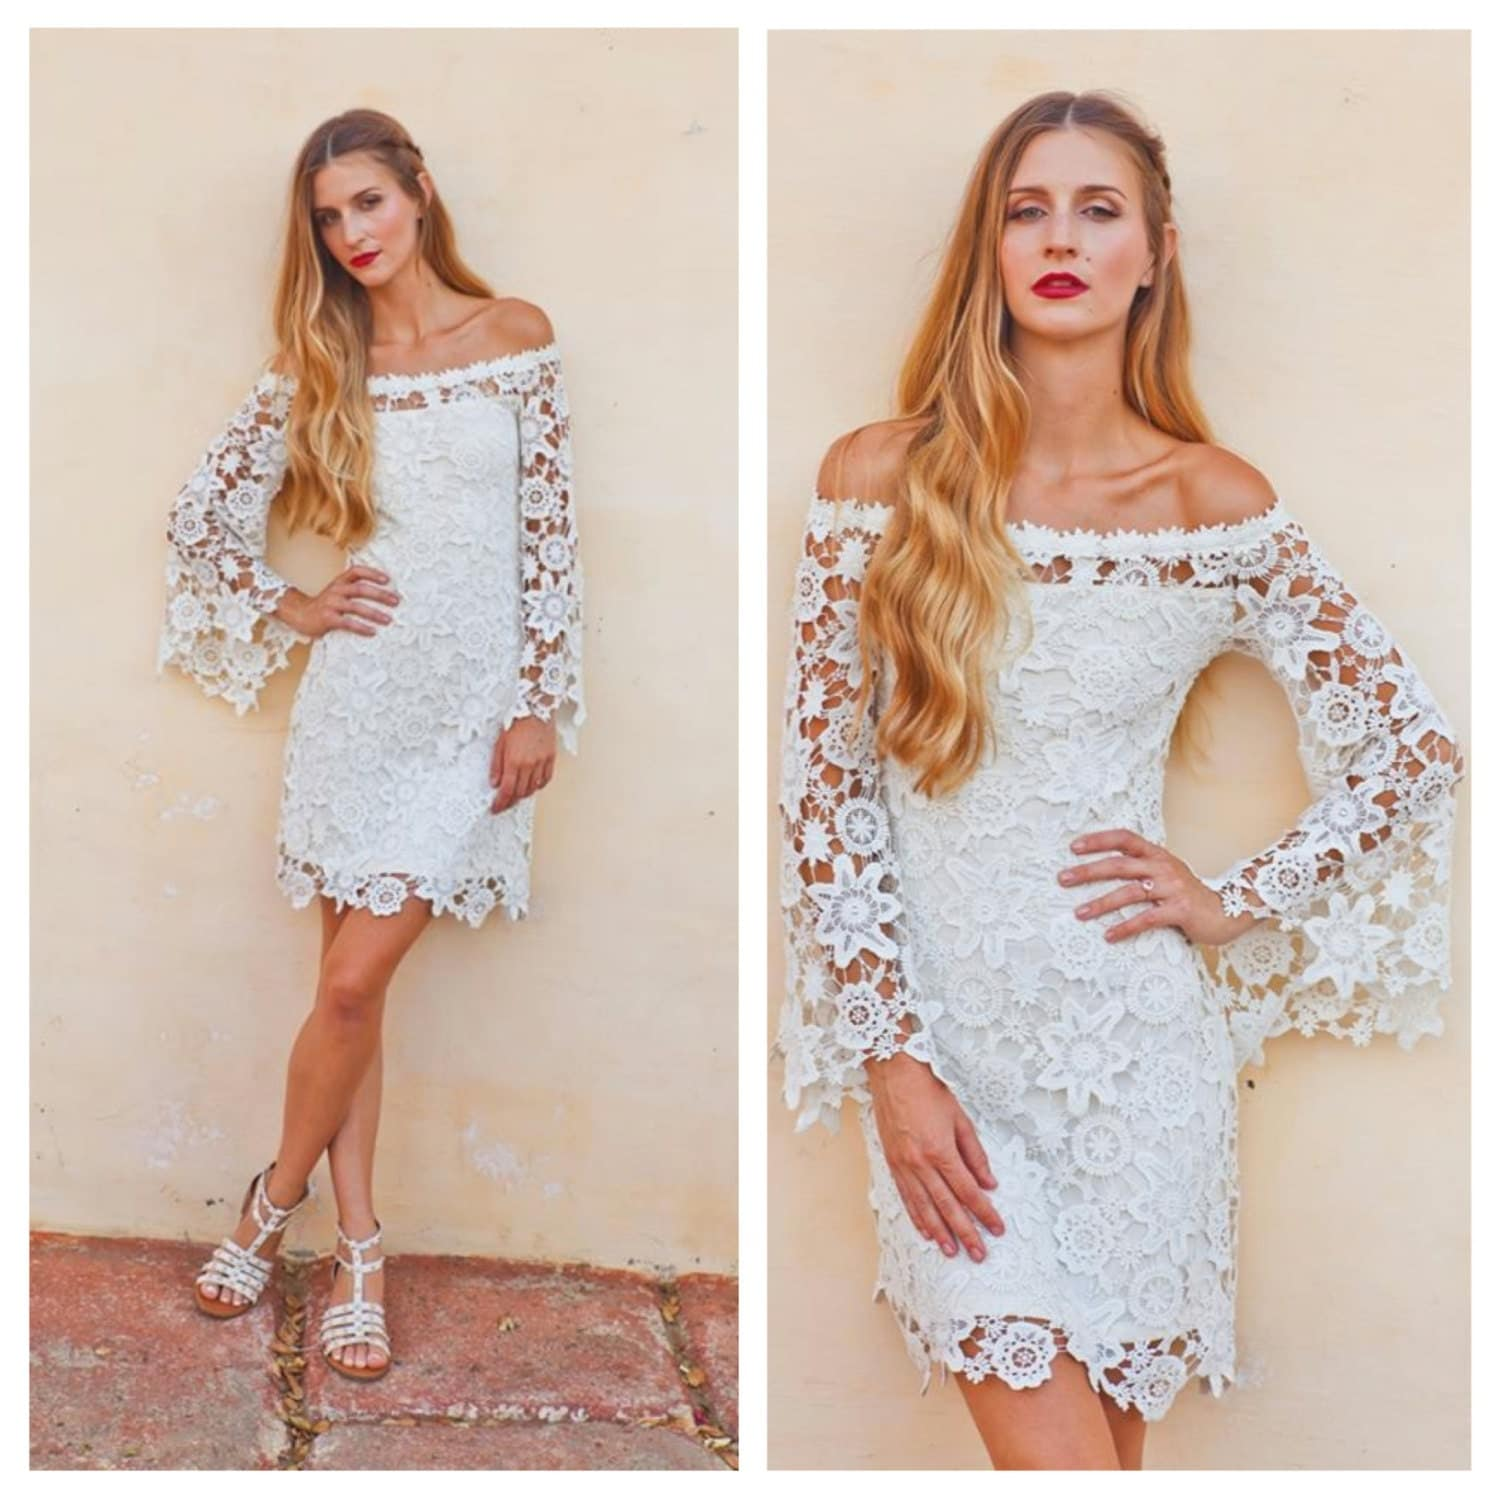 Lacy Clothing For Women Boho BELL SLEEVE crochet lace dress